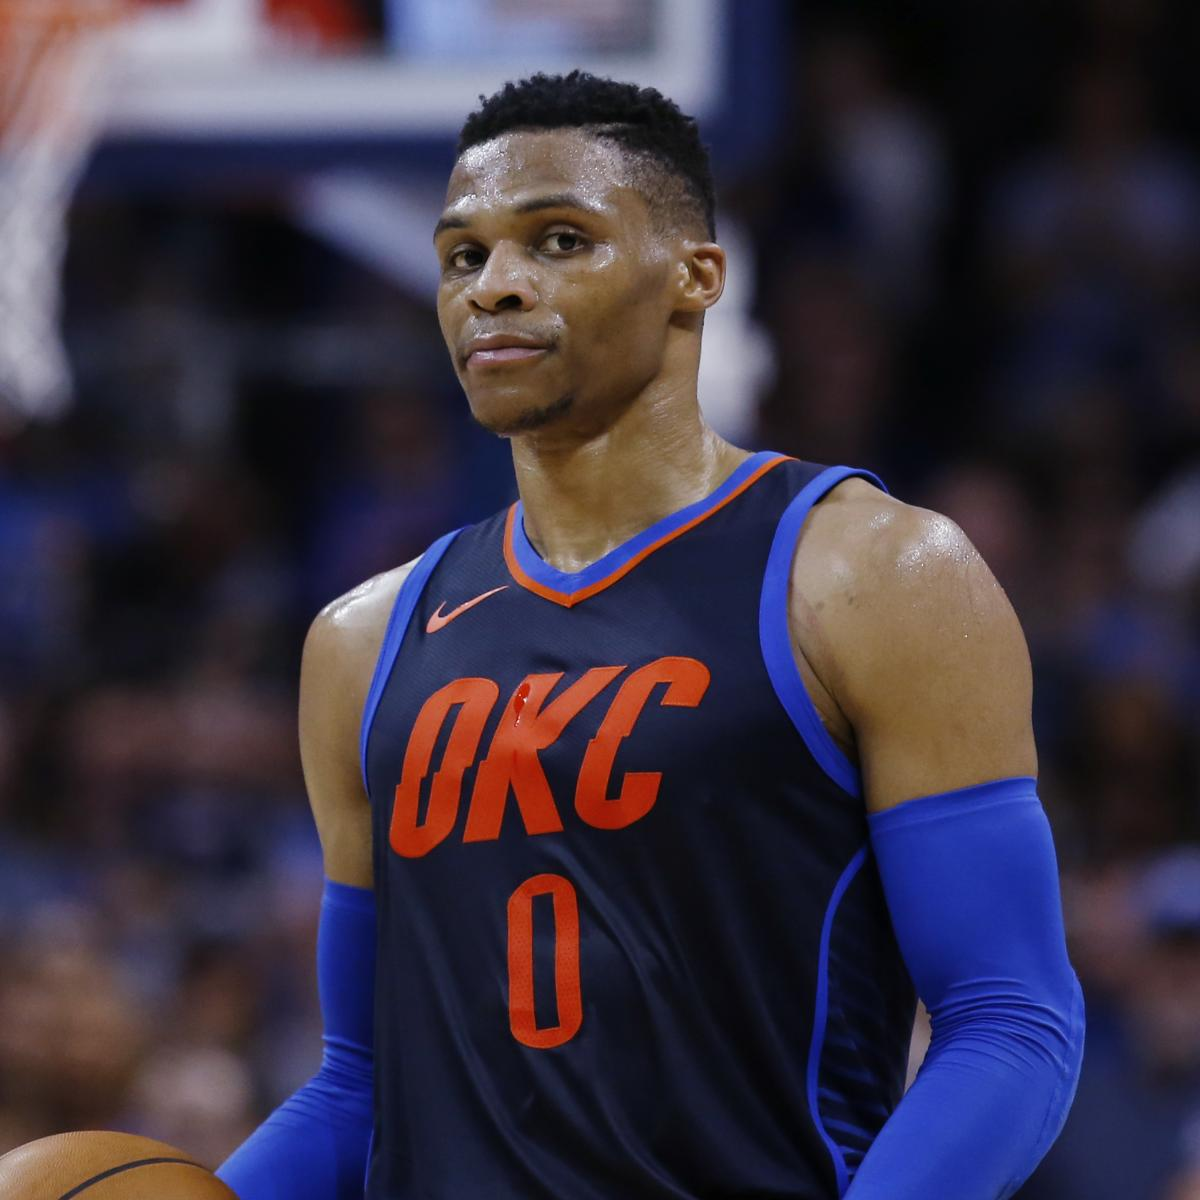 Denver Nuggets Predictions: Oklahoma City Thunder Vs. Denver Nuggets Odds, Analysis